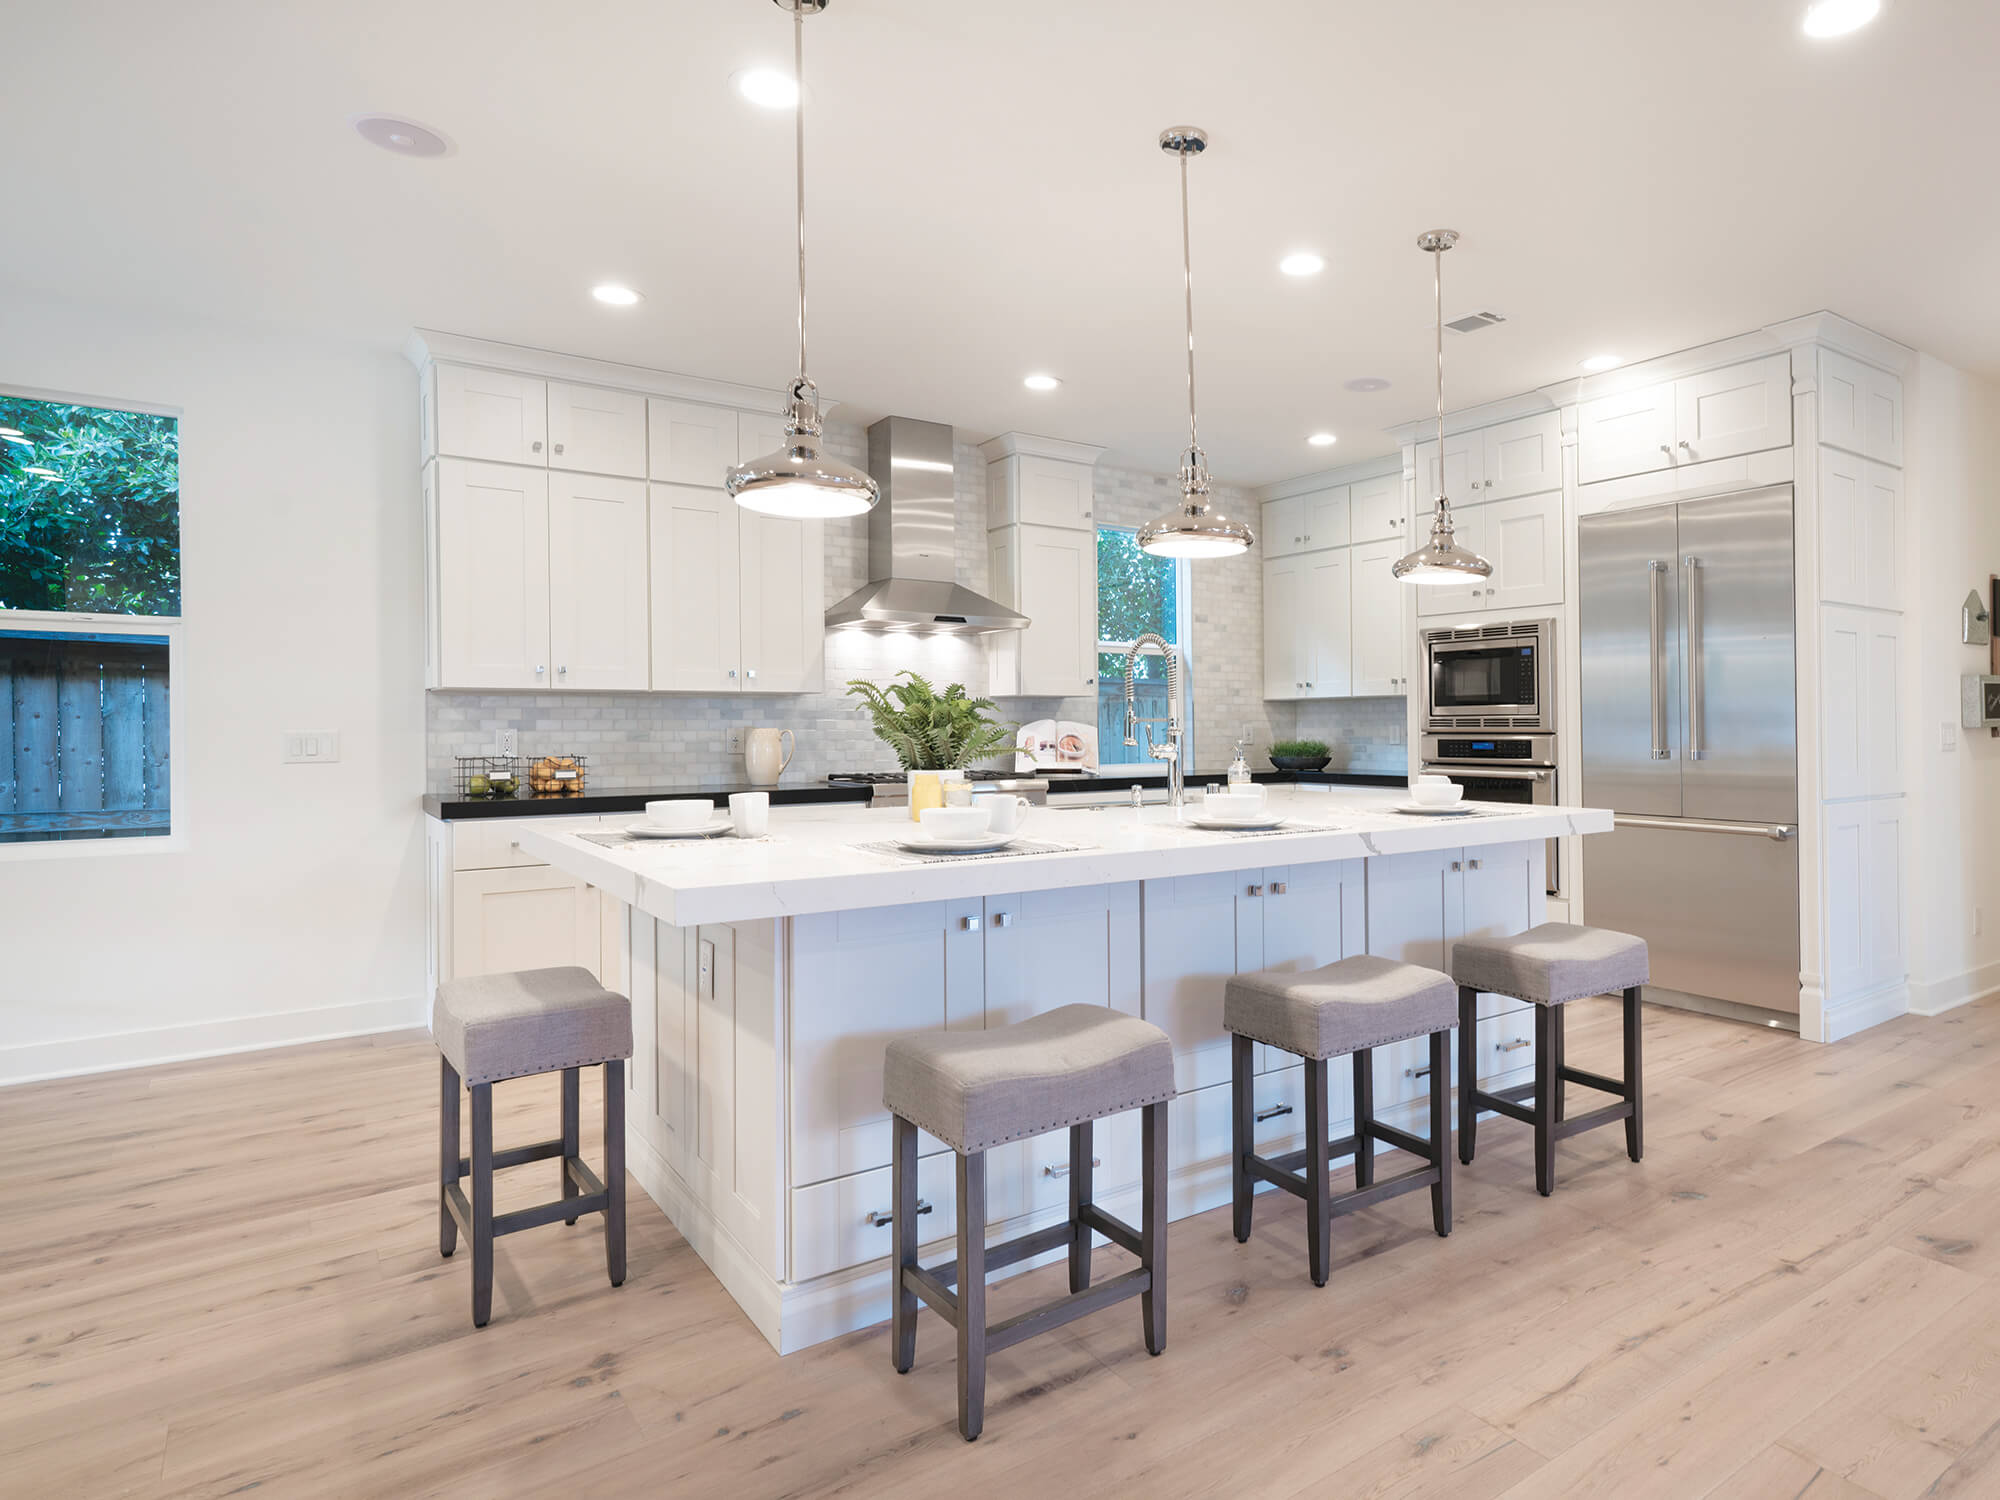 ... Architect, Engineer, And Assistant Designers To Create The Best  Possible Solution, Design, And Spacing. We Are A One Stop Shop For All You  Home Needs.